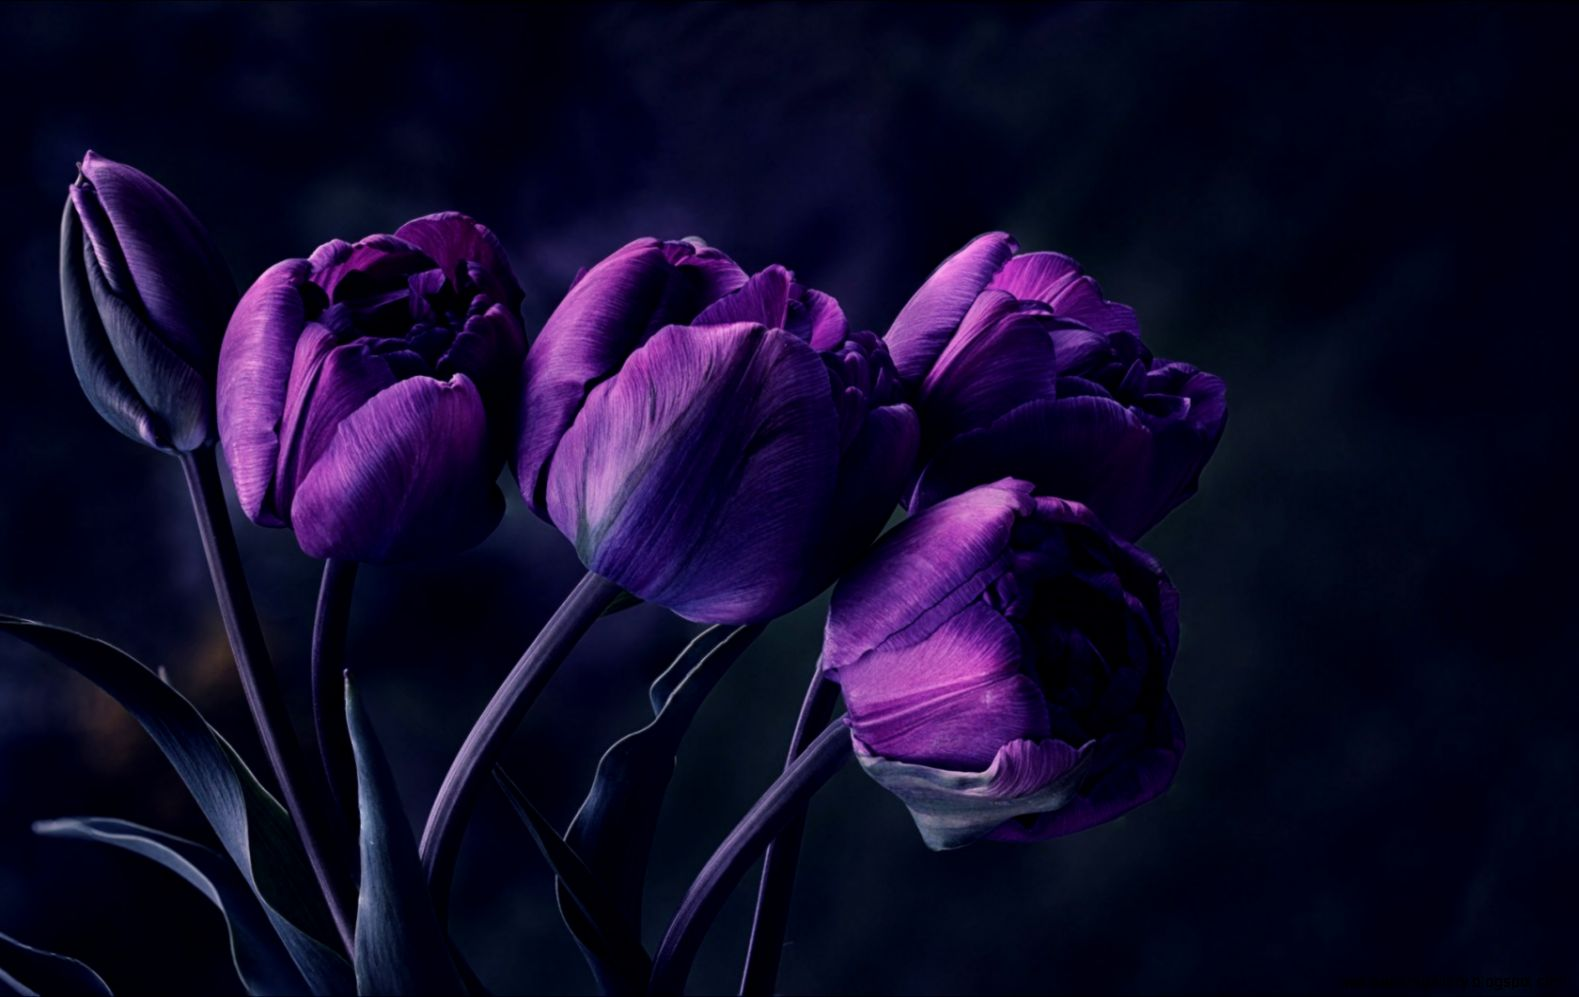 1000 images about Wallpapers on Pinterest  Dark Purple Flowers